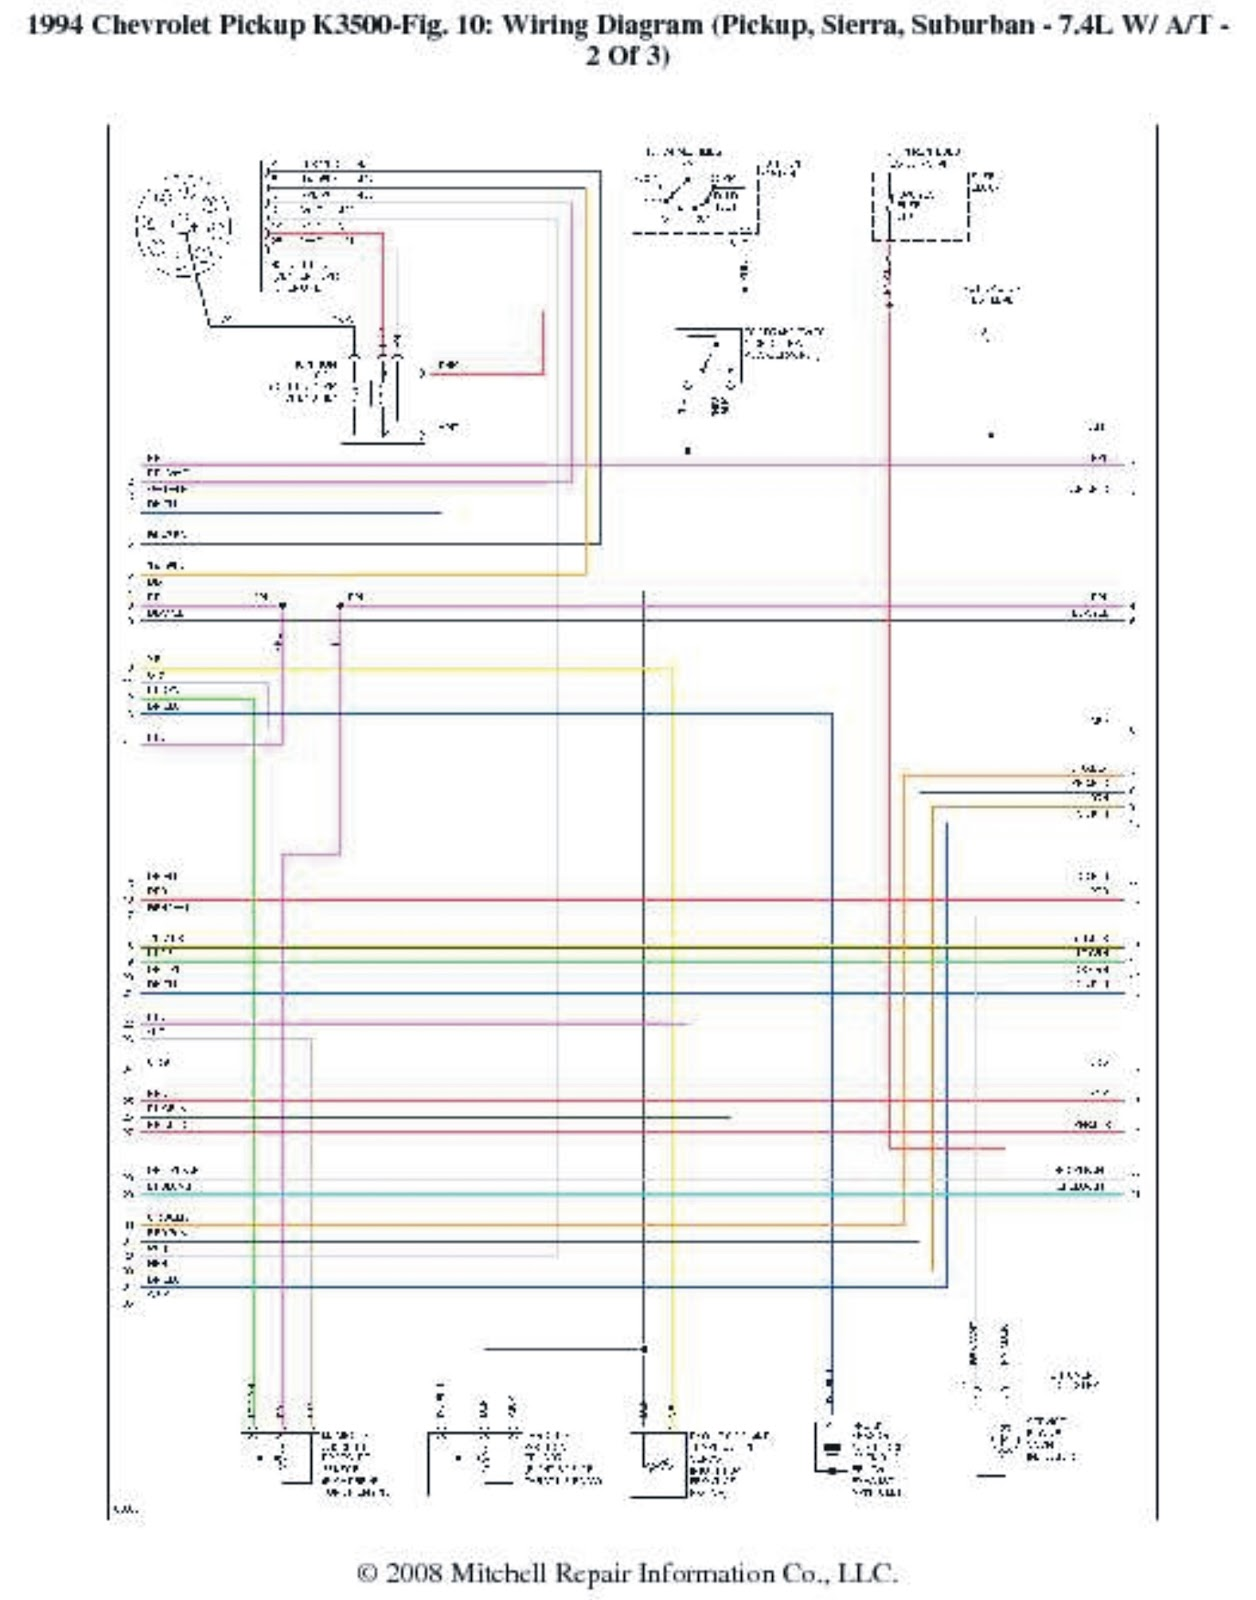 97 Chevy Lumina Fuse Box Diagram 2000 Chevy Lumina Fuse ...